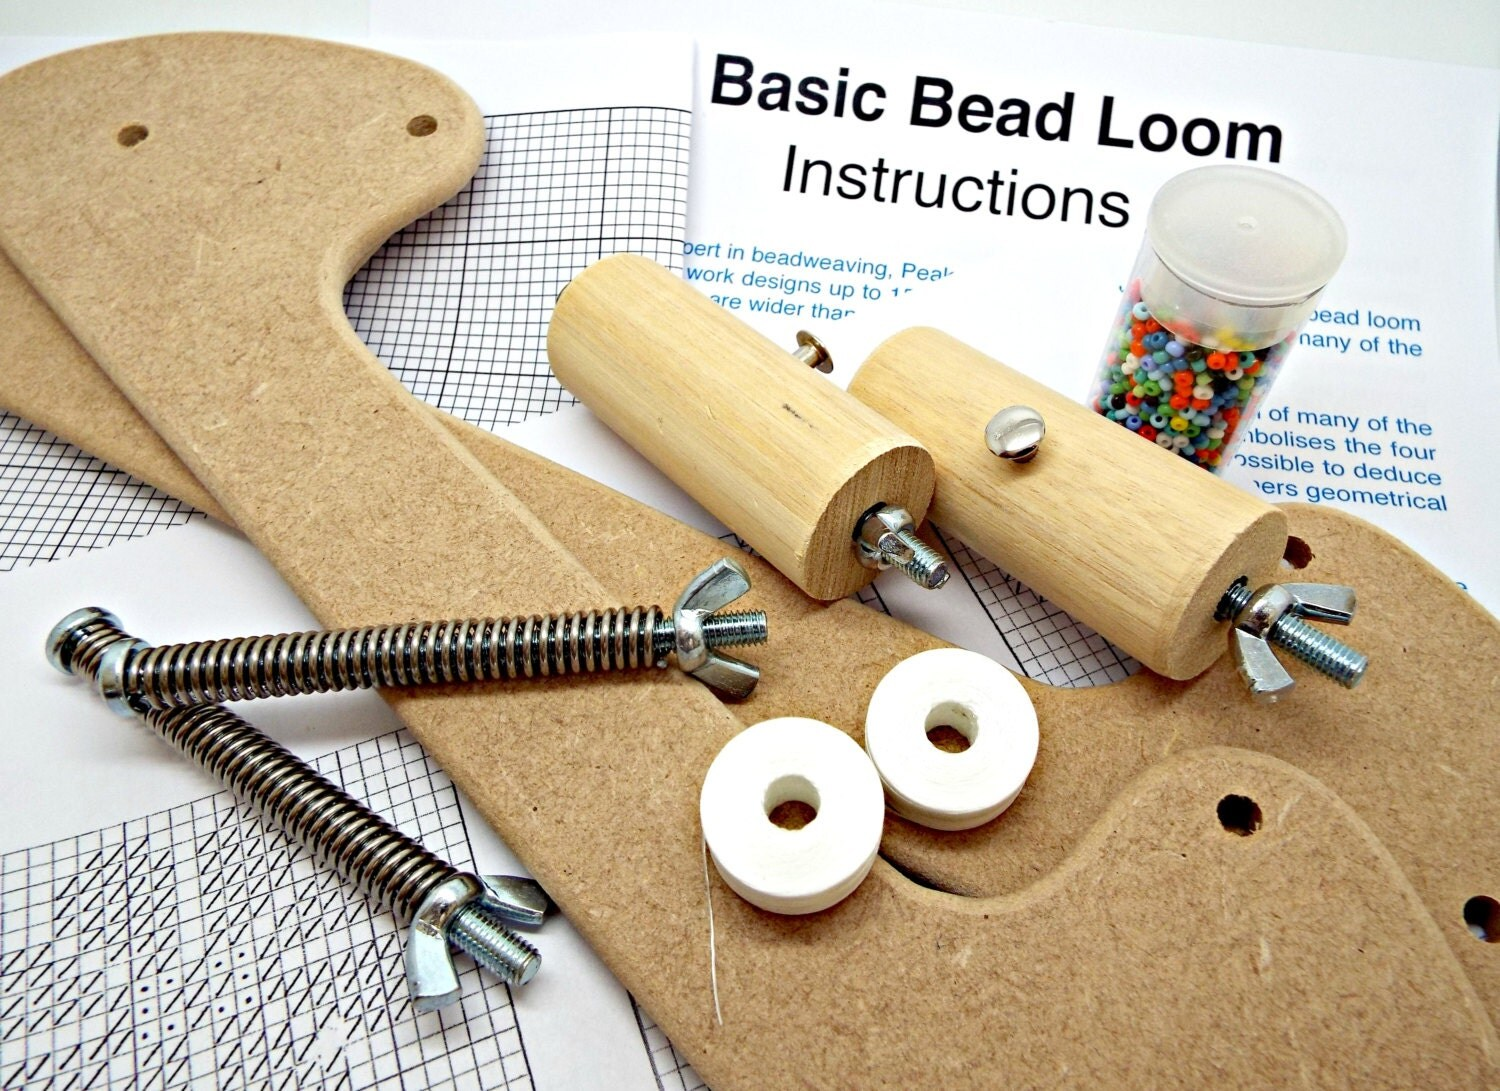 il_fullxfull.1067193611_mi2o Homemade Bead Loom Plans on hair combs diy loom, homemade paper beads, handmade beaded bracelets on loom, homemade loom for scarves, homemade wood loom, beading loom,